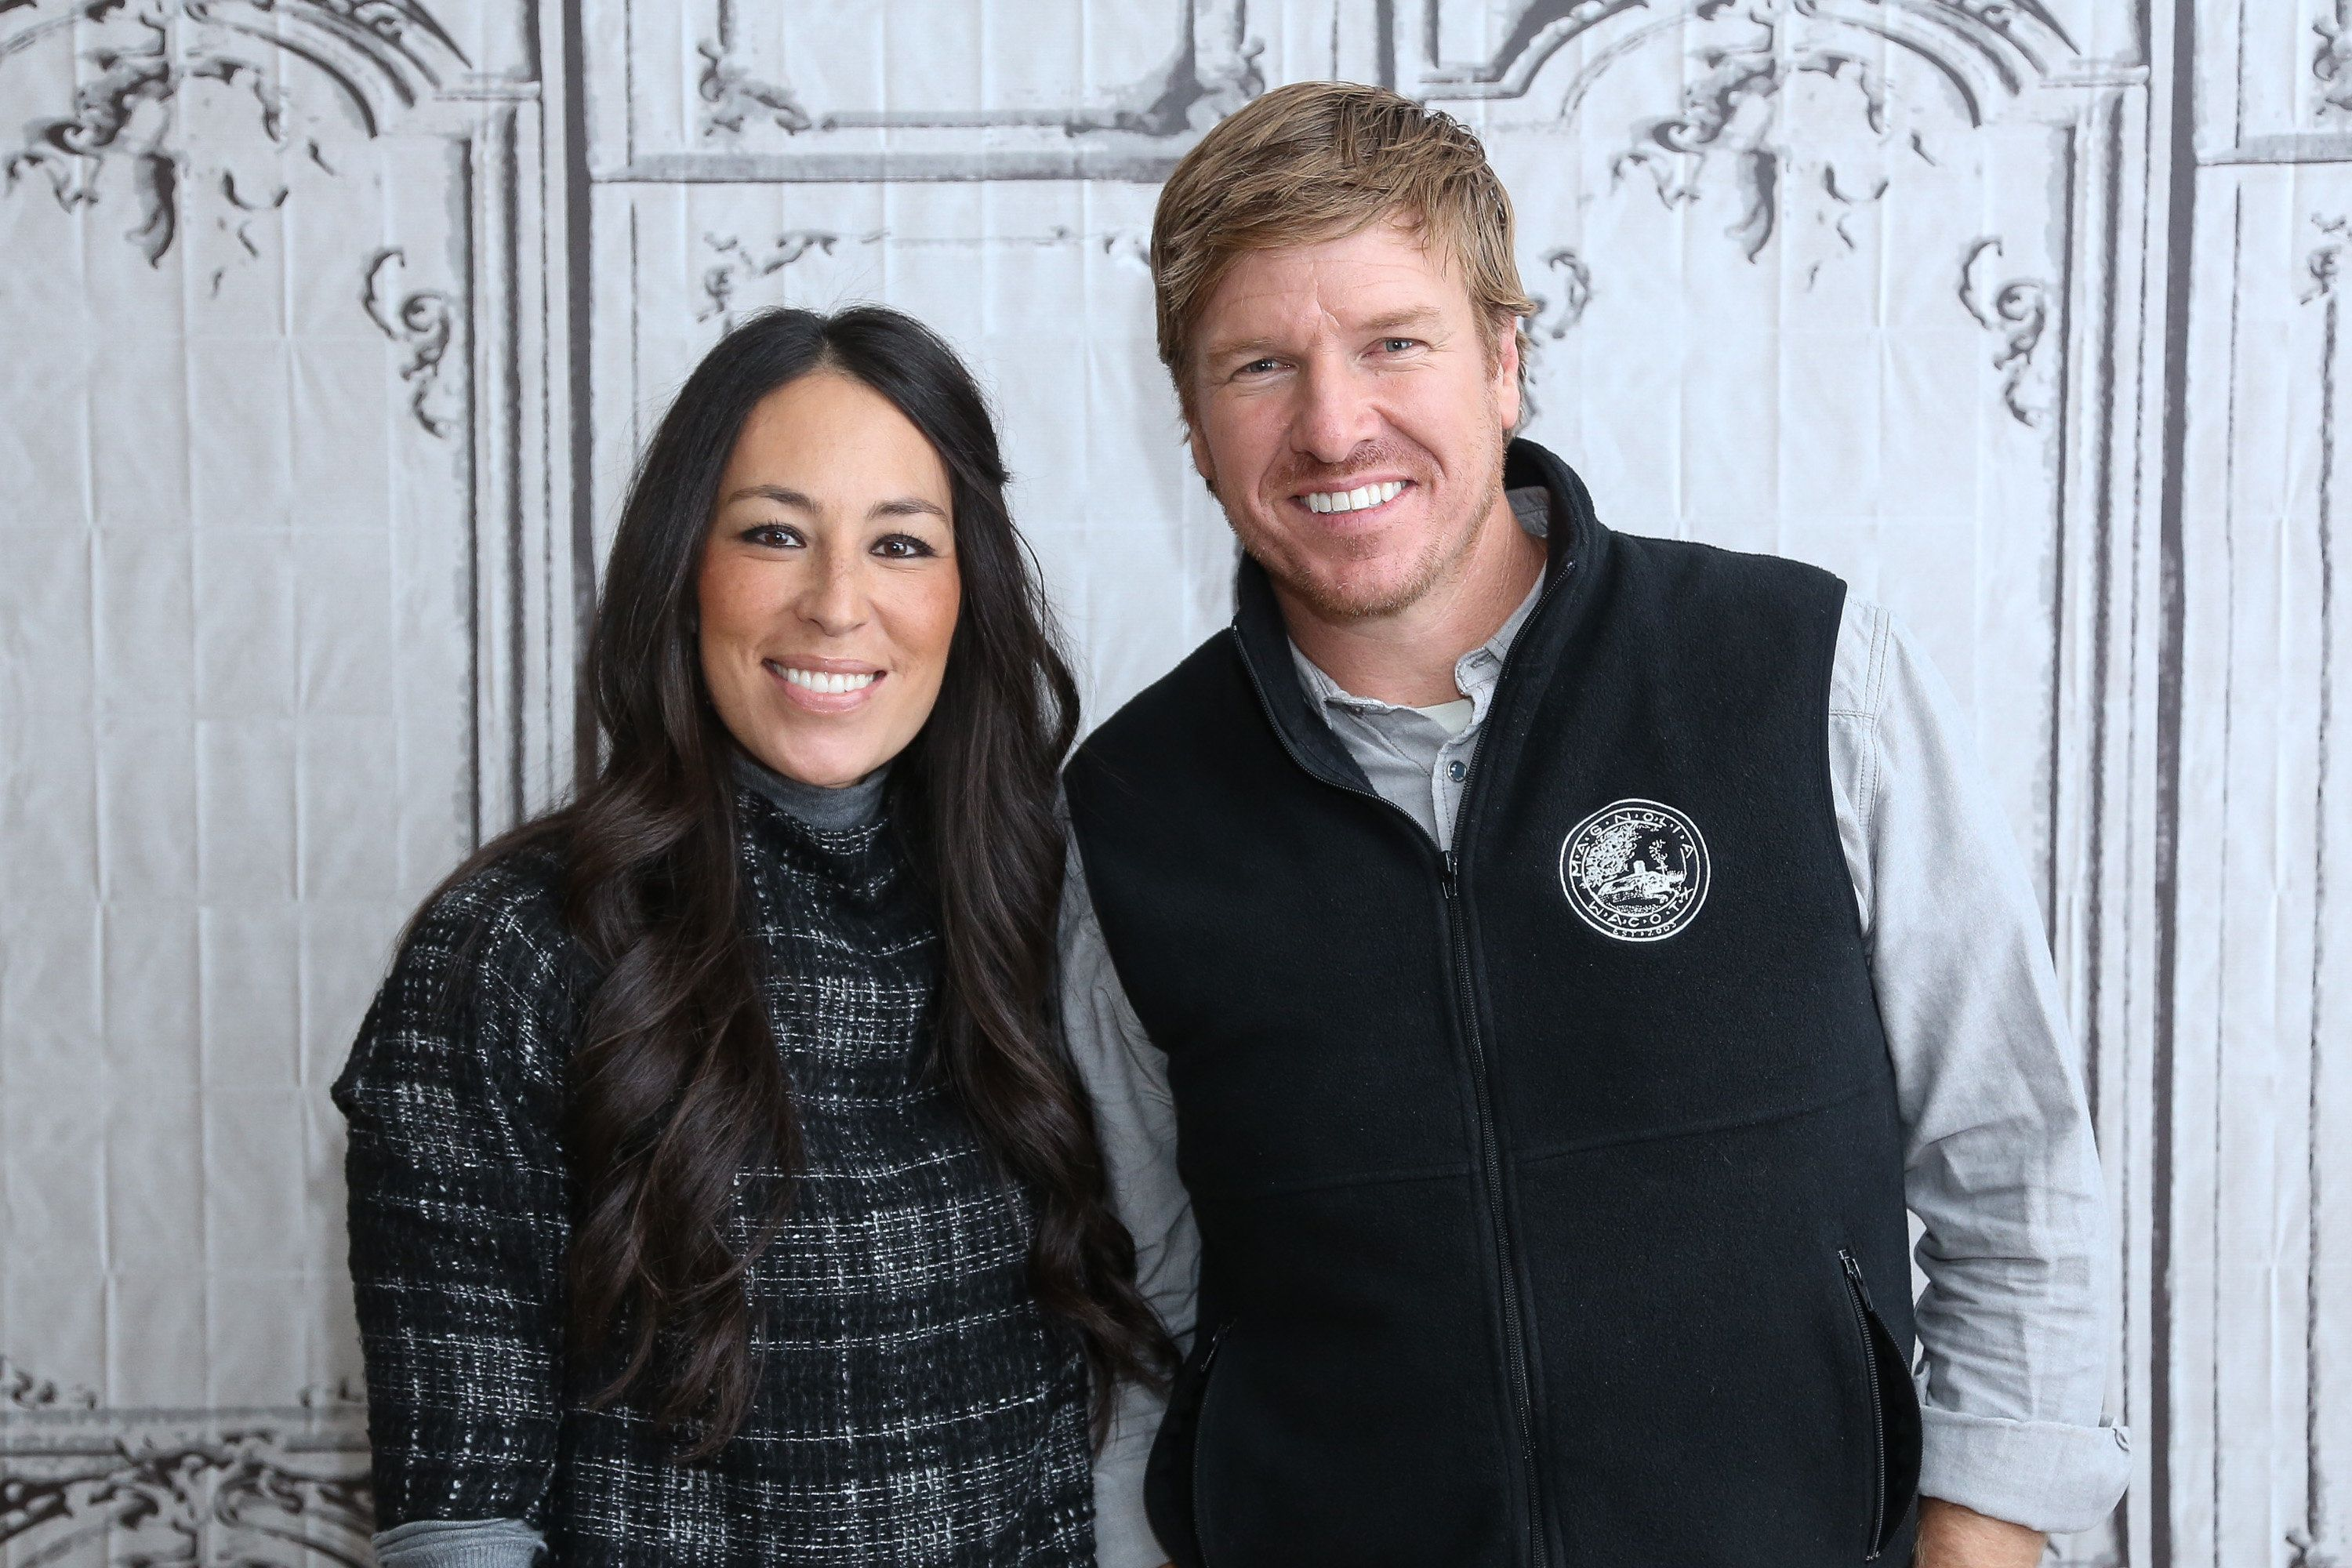 NEW YORK, NY - DECEMBER 08:  Real estate pros Chip Gaines (R) and Joanna Gaines attend AOL Build Presents: 'Fixer Upper' at AOL Studios In New York on December 8, 2015 in New York City.  (Photo by Rob Kim/Getty Images)